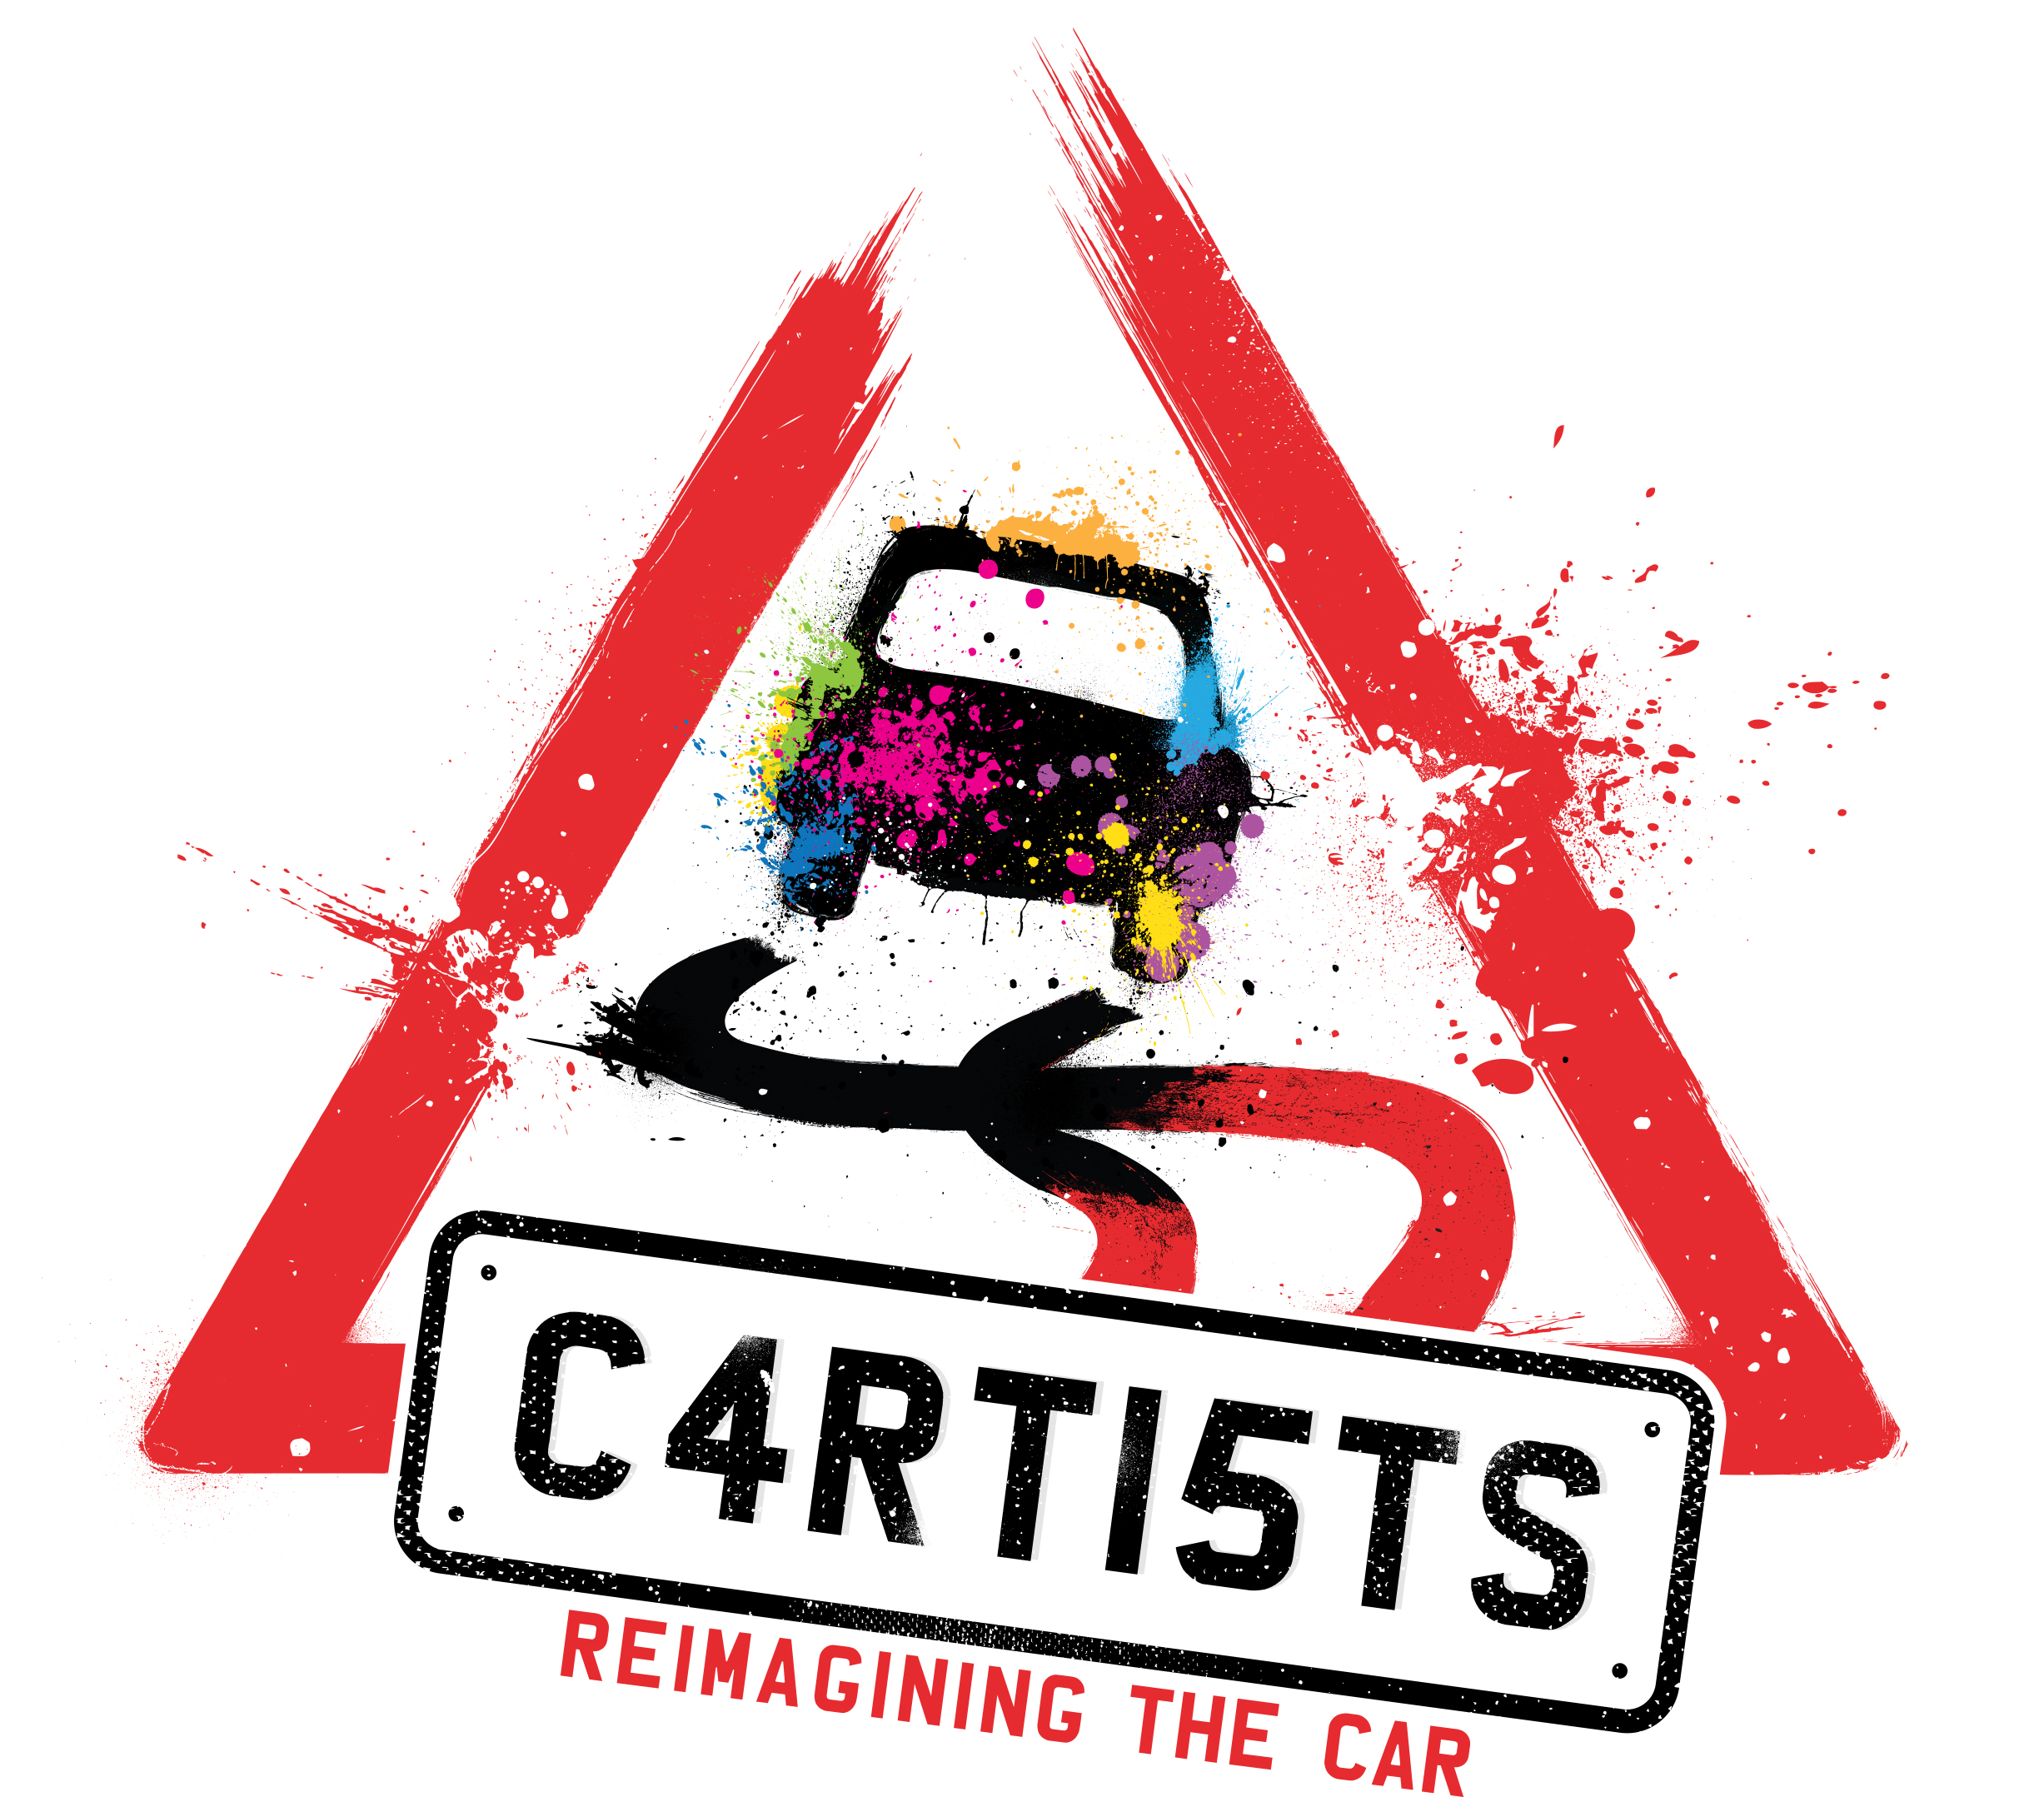 cartists image - a paint spattered road sign of a car